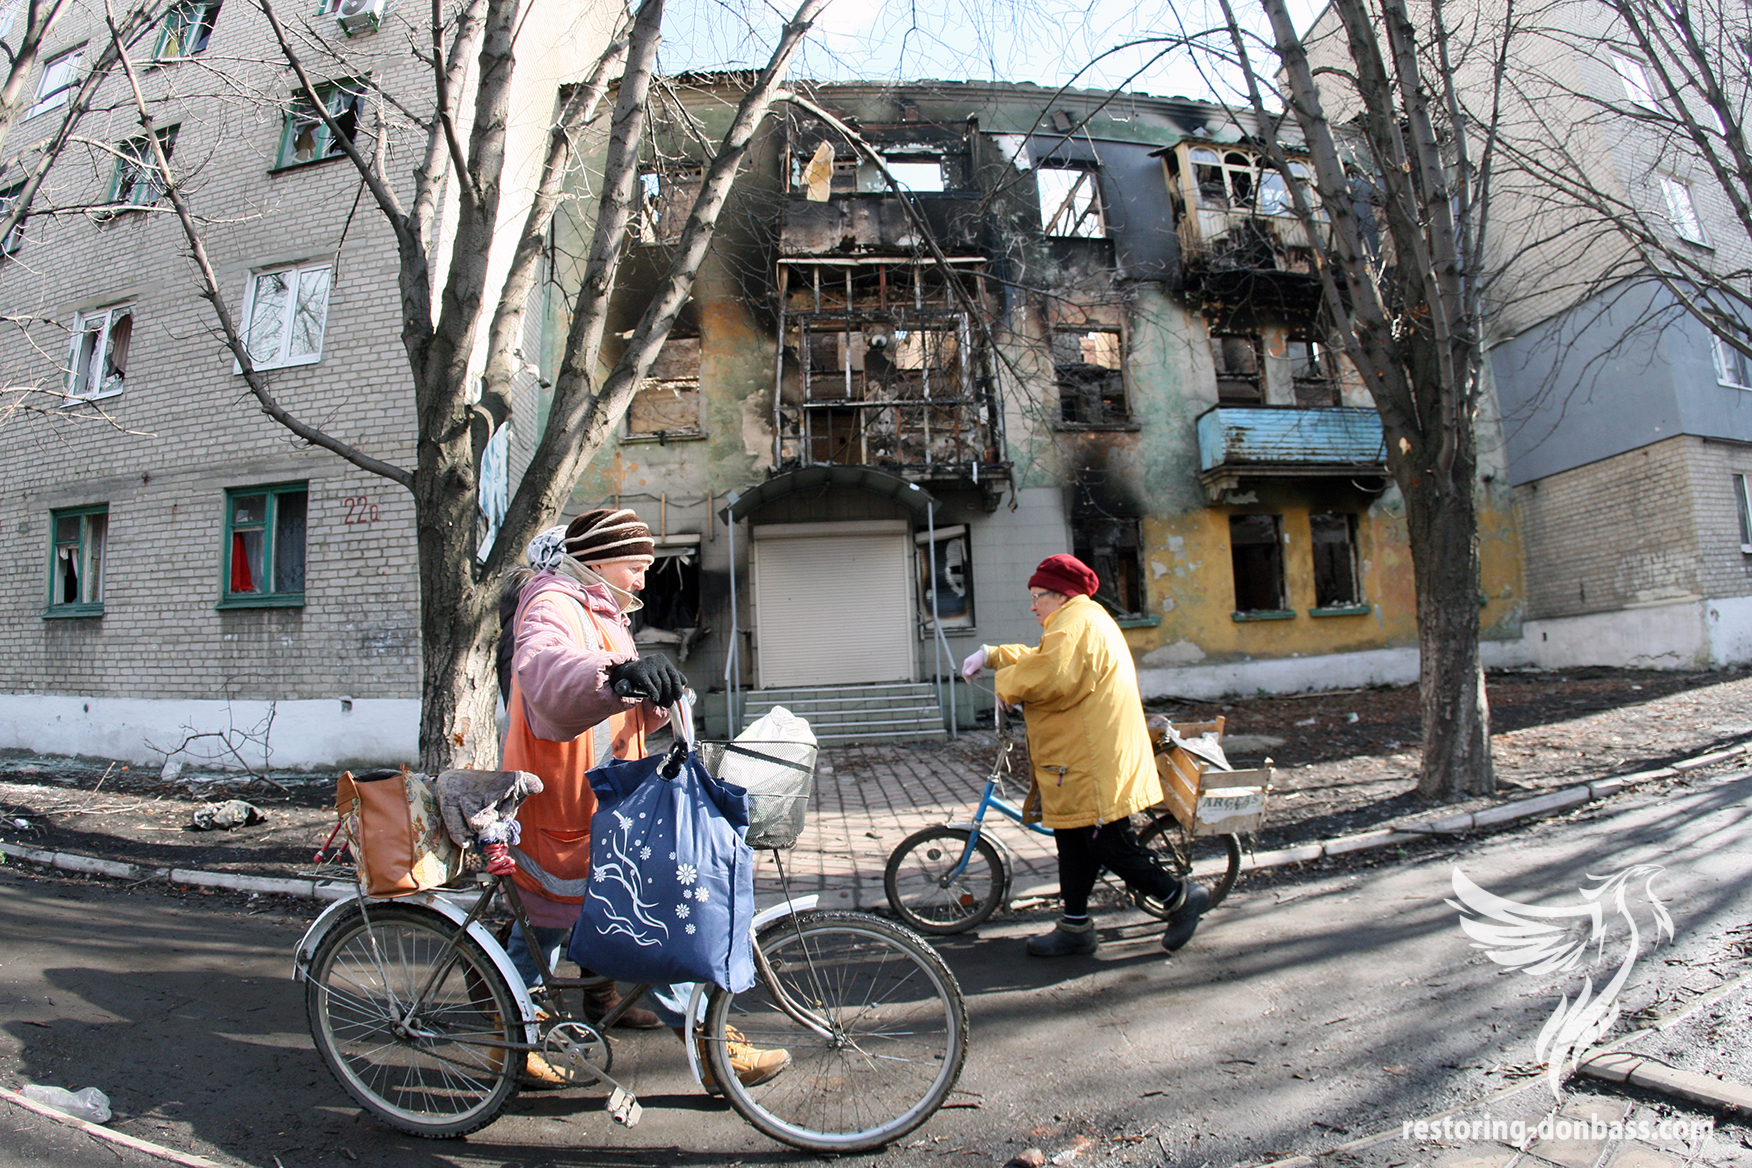 Debaltsevo after hostilities, March 6, 2015